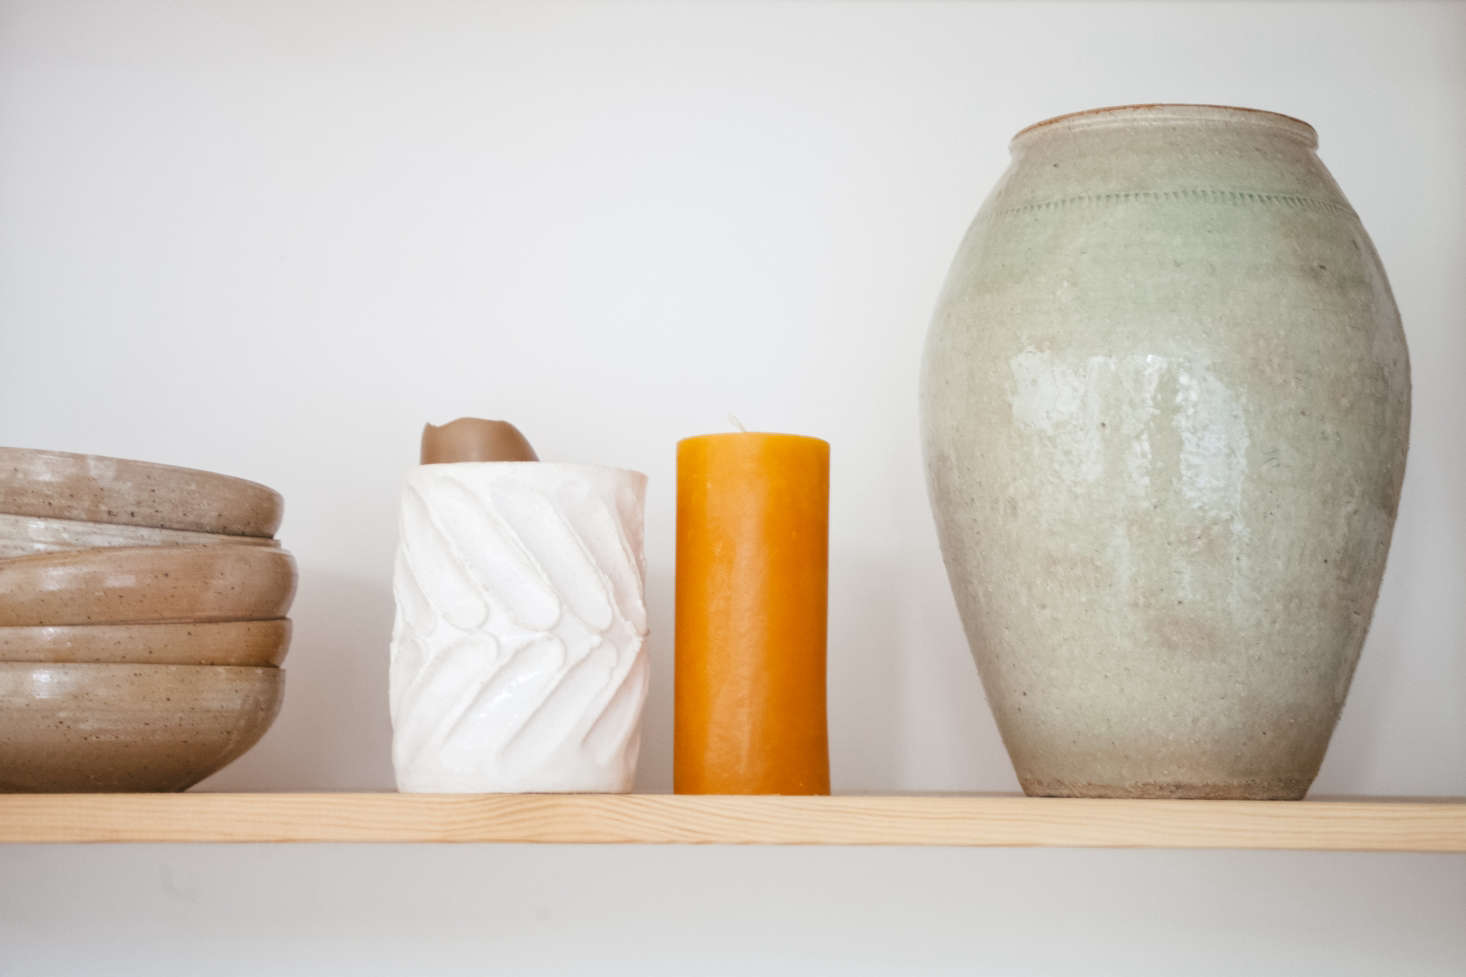 The white vase with fingerprints is by Lucile.